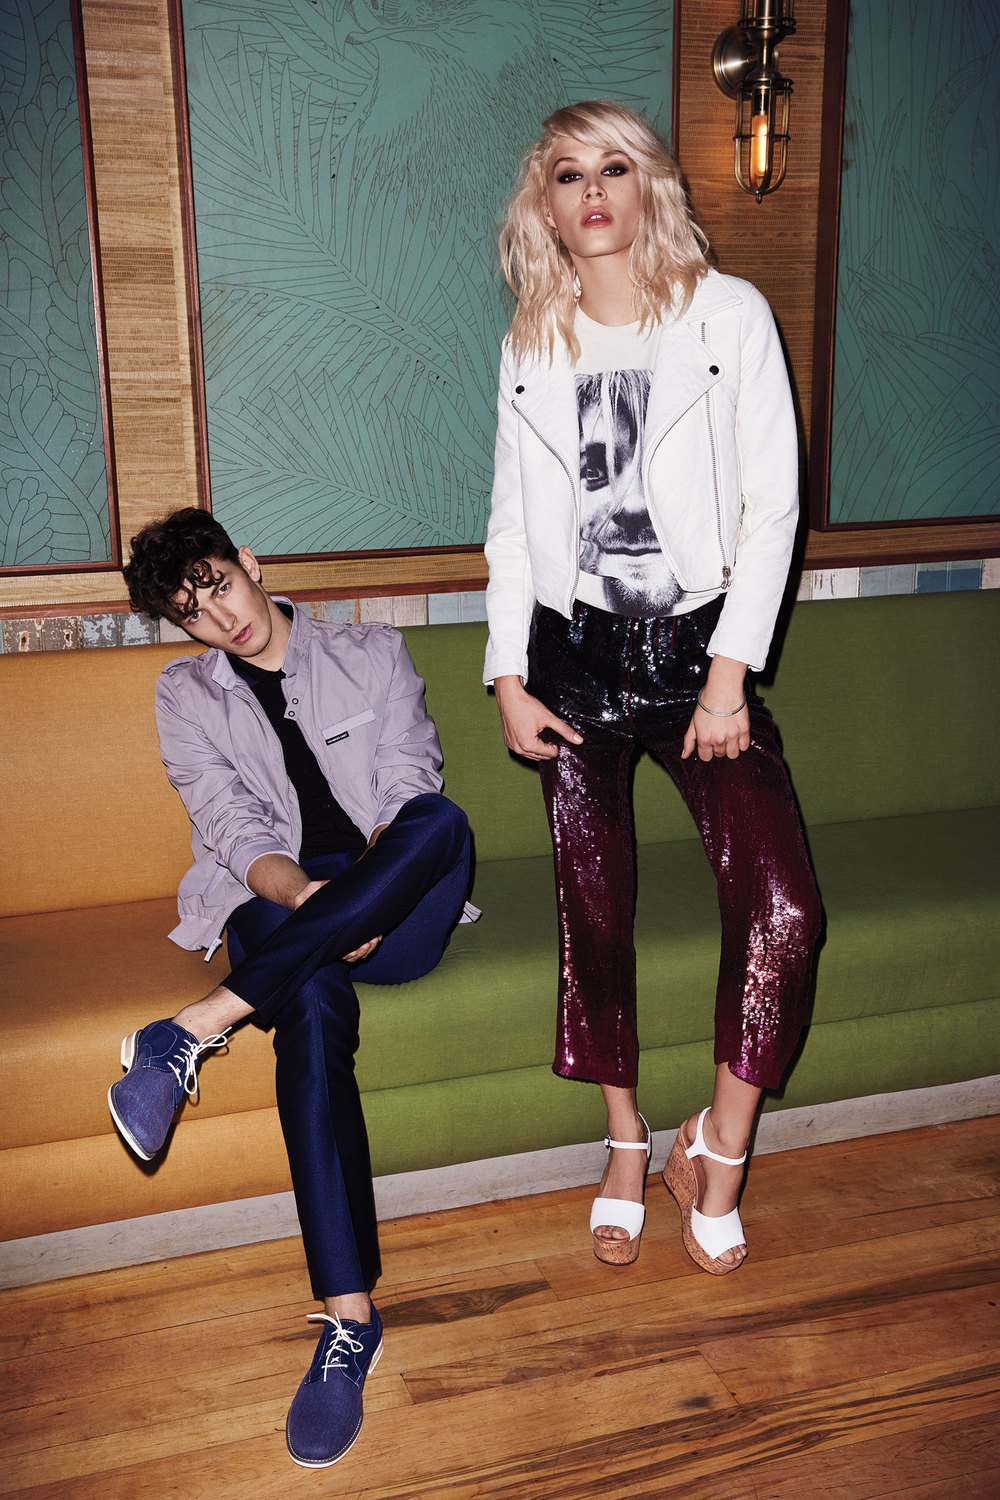 STEVE-MADDEN-SS15-CAMPAIGN-STYLED-BY-ANDREA-MESSIER-CUOMO-13.jpg